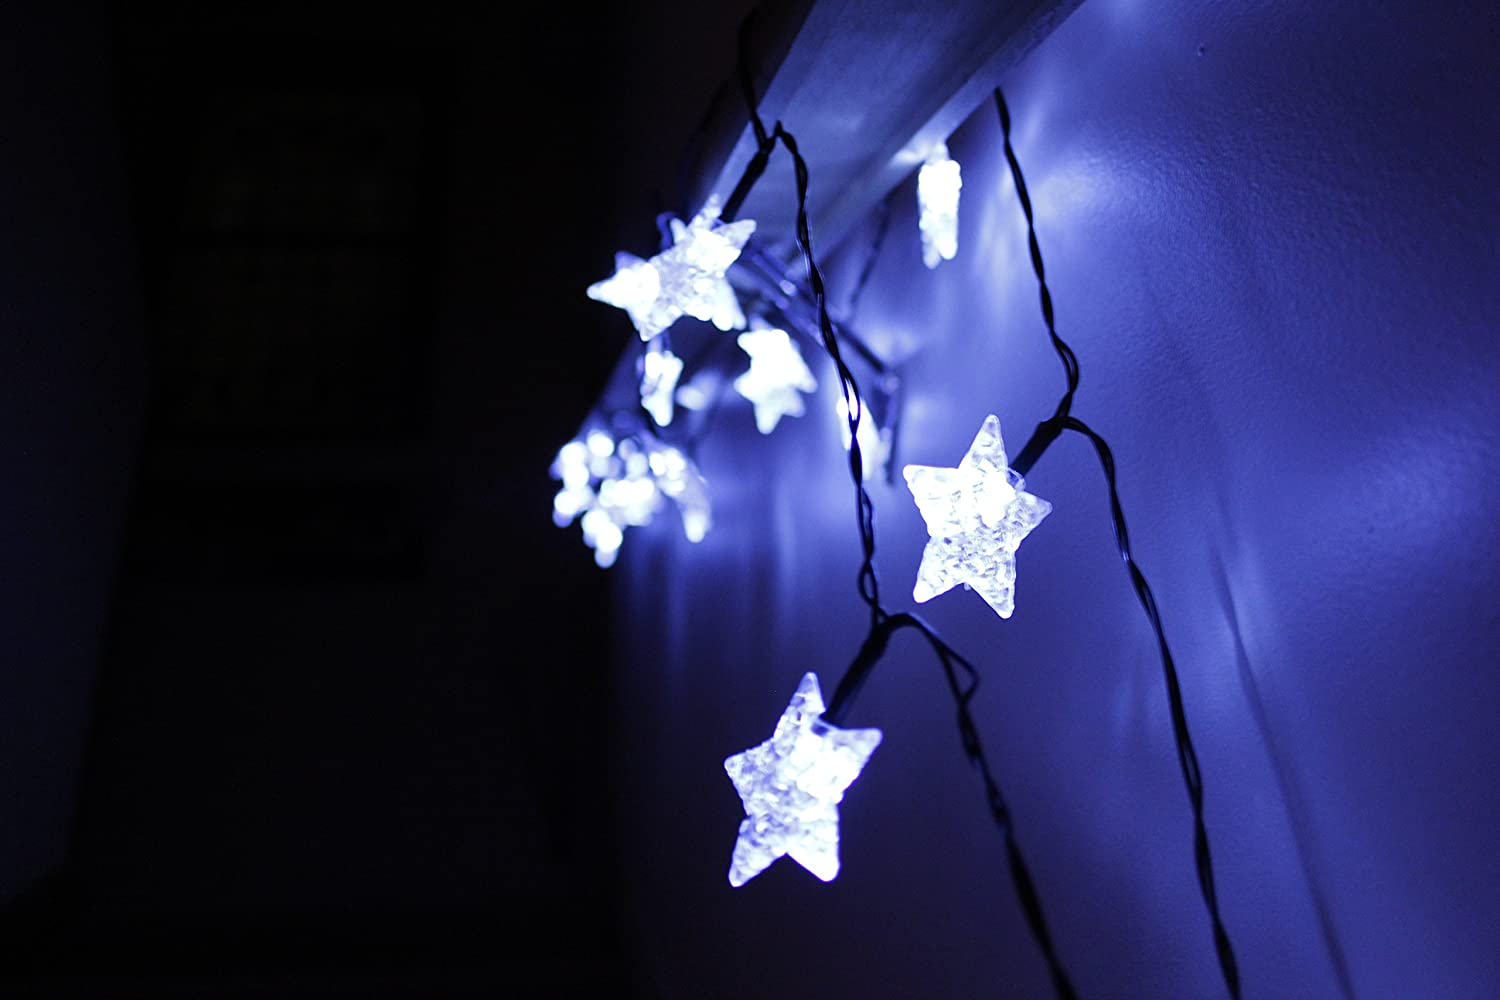 led star lights string large white star shaped covers solar energy battery operated light up holiday christmas tree and outdoor hanging rope - Christmas Star Light Outdoor